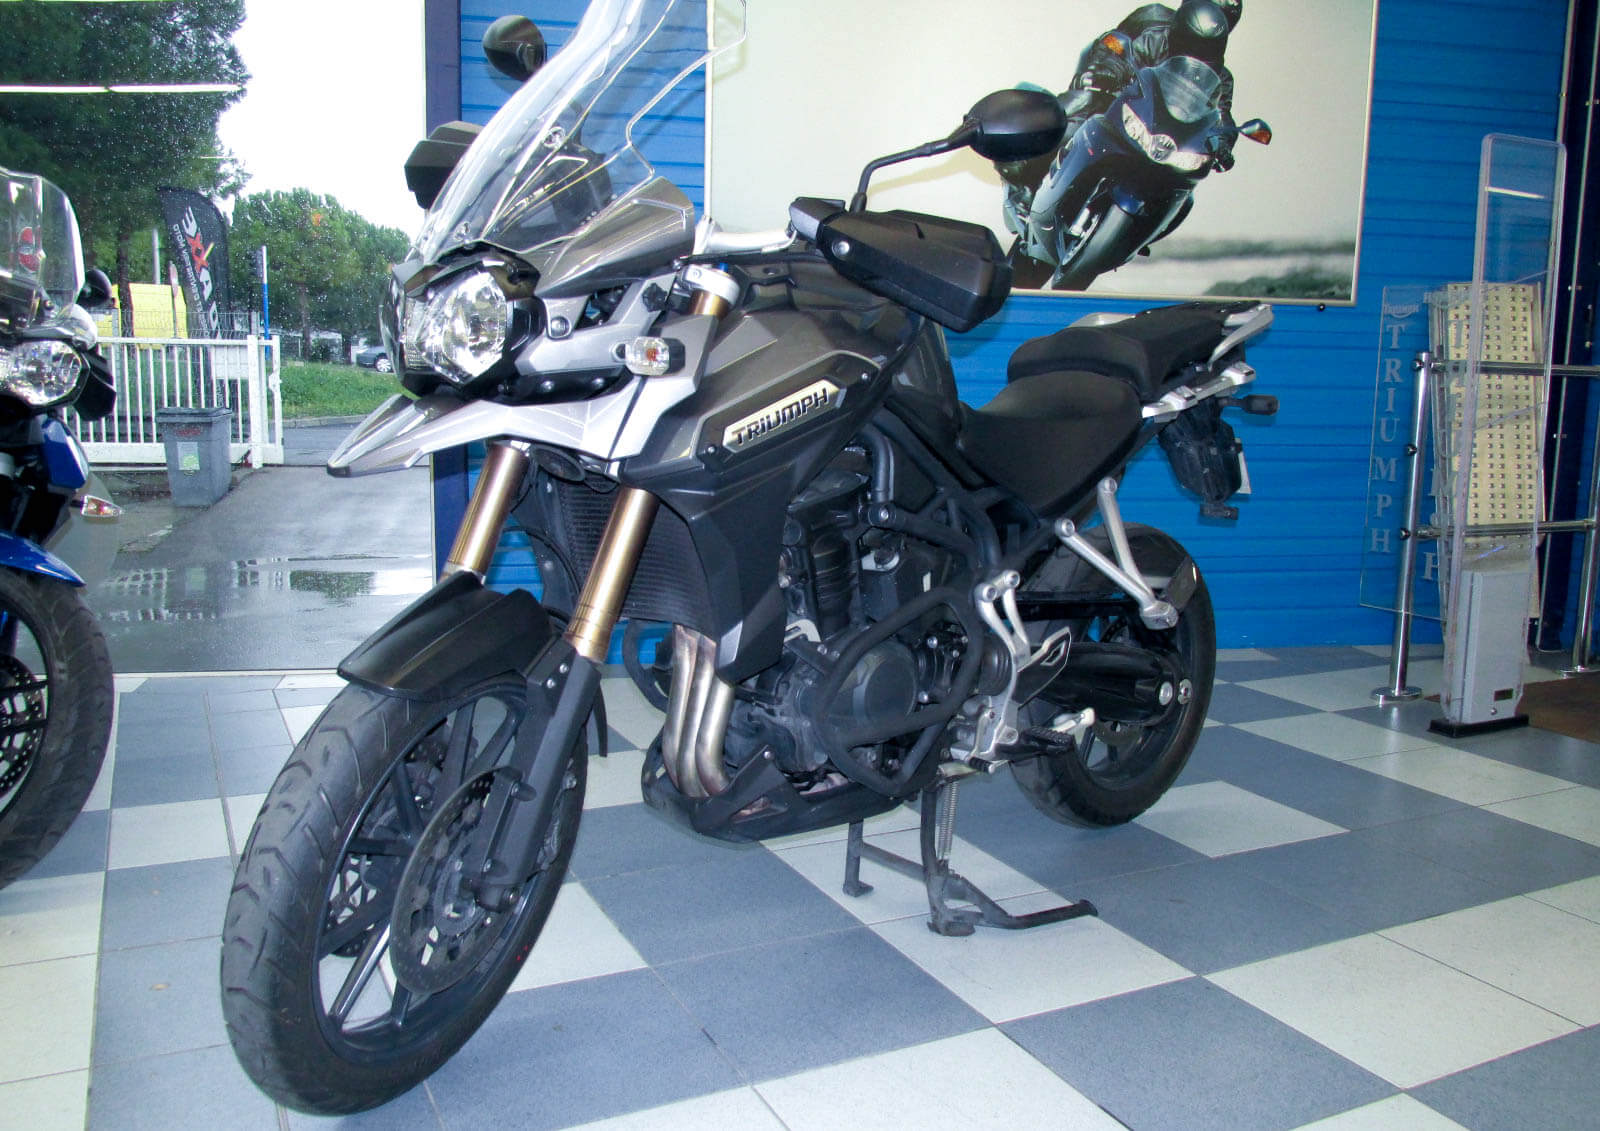 location triumph tiger 1200 explorer easy renter. Black Bedroom Furniture Sets. Home Design Ideas